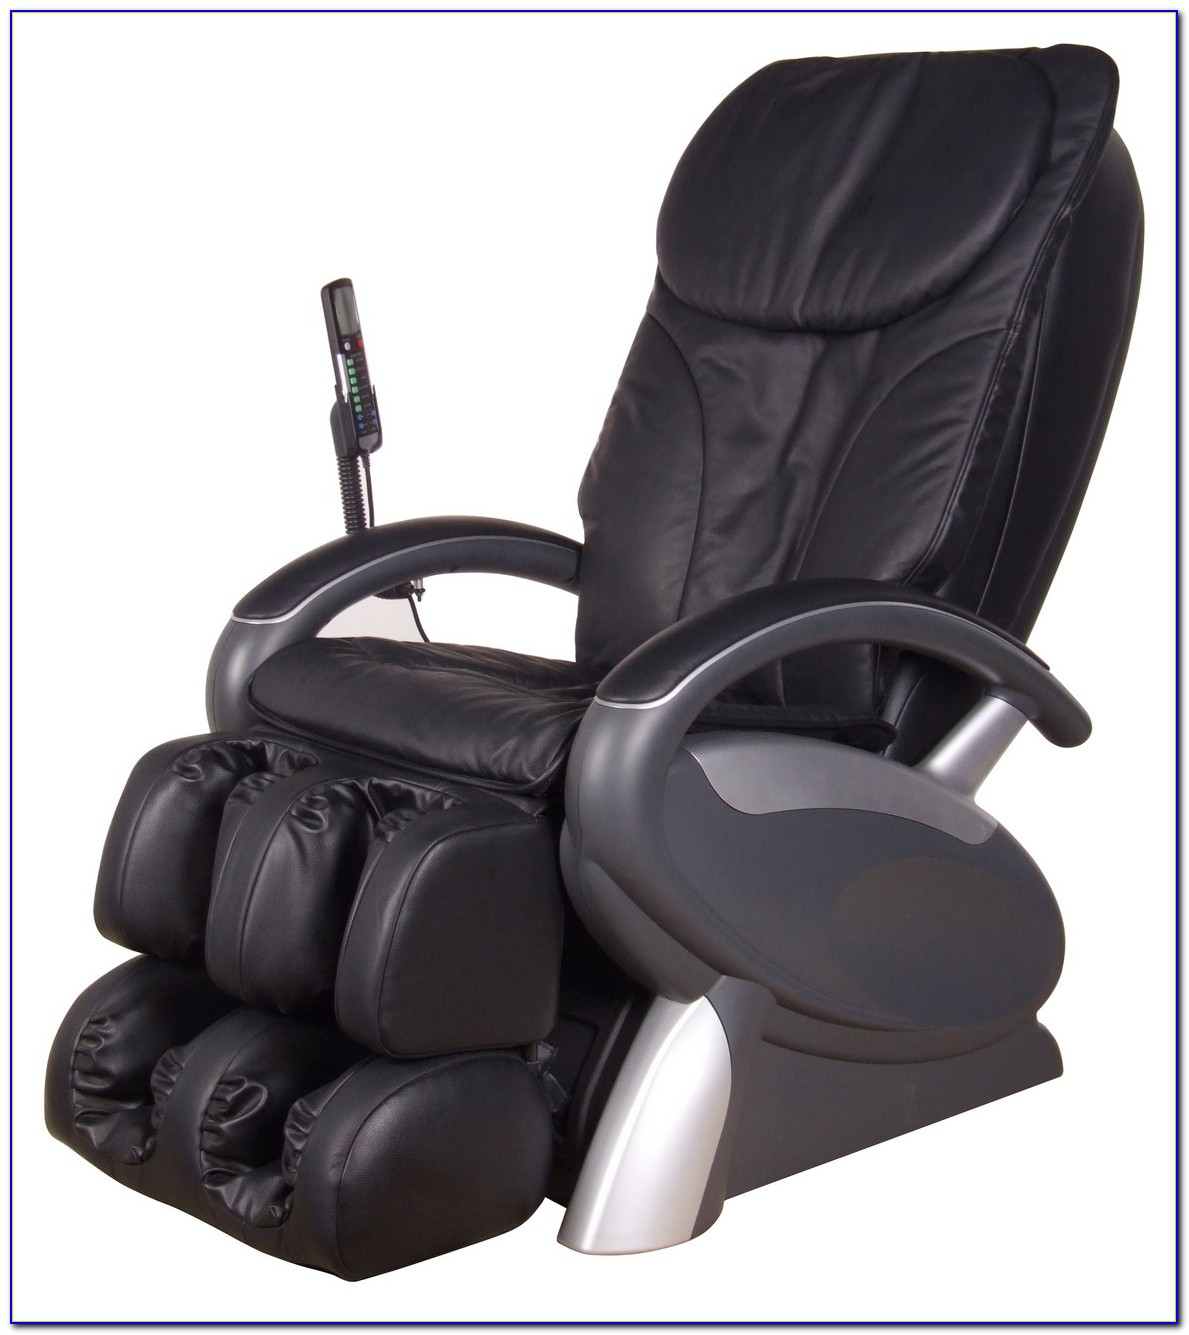 Cozzia Massage Chair Troubleshooting